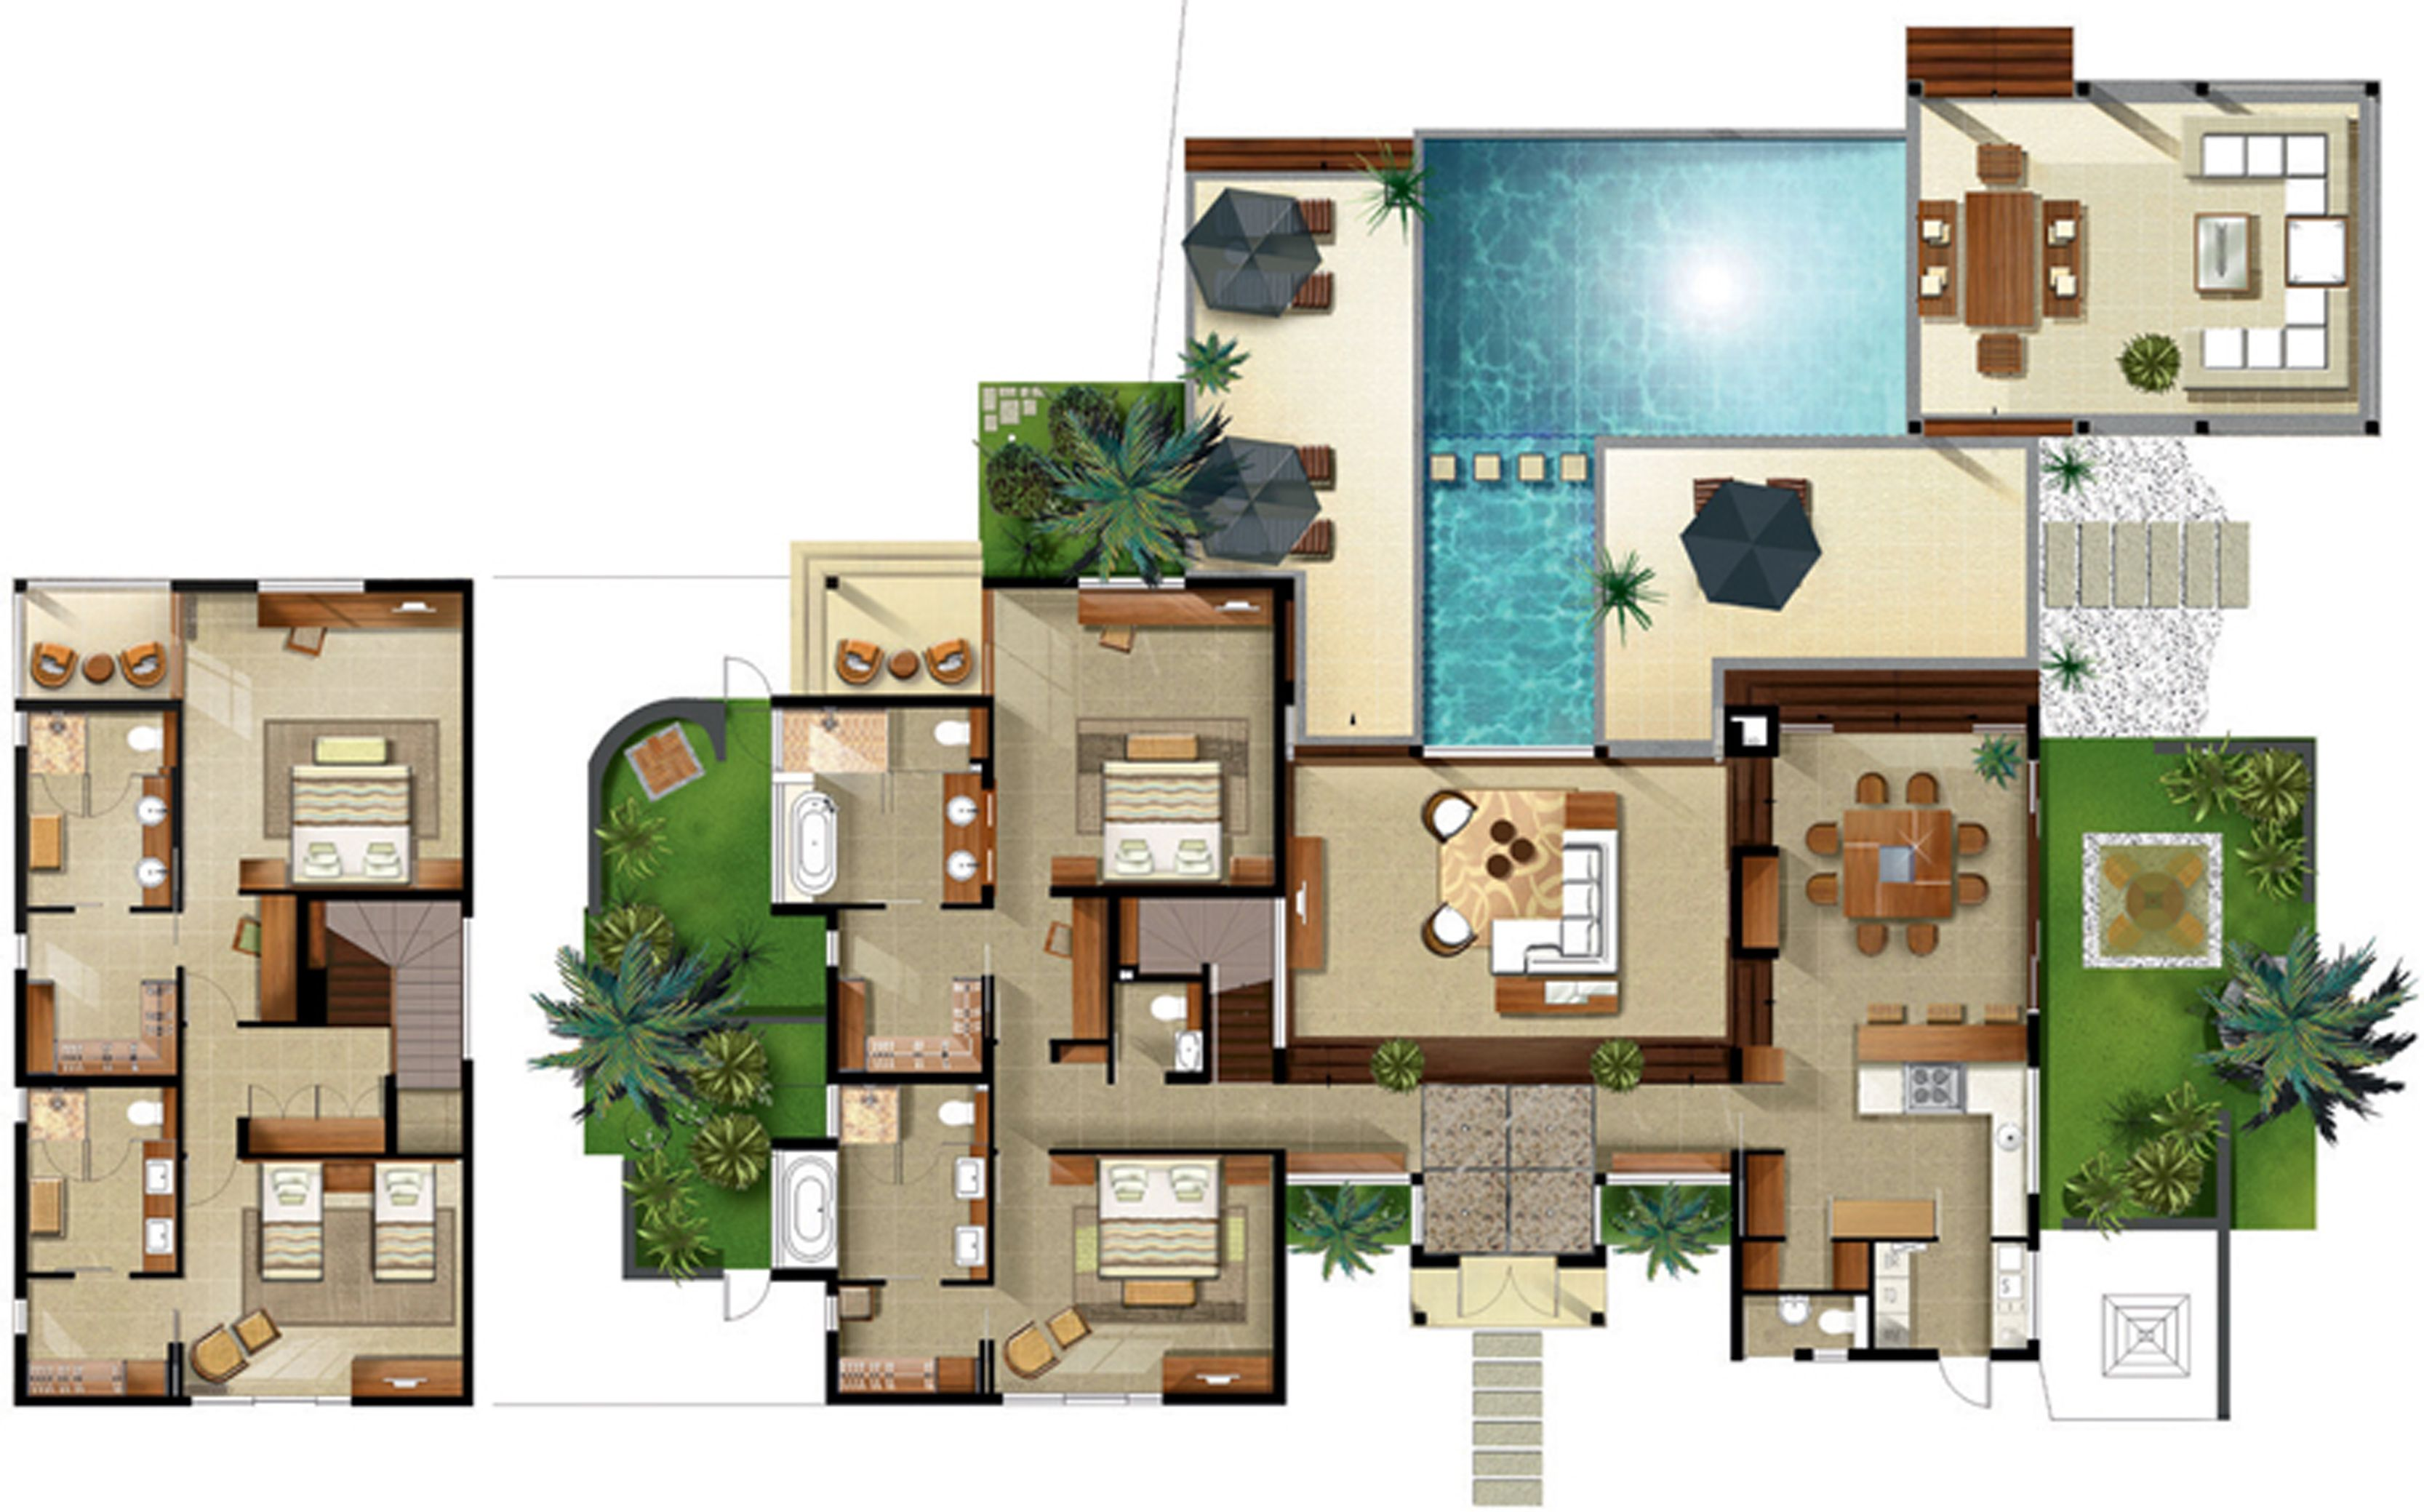 Disney beach club villas floor plan resort villa floor for Villa architecture design plans